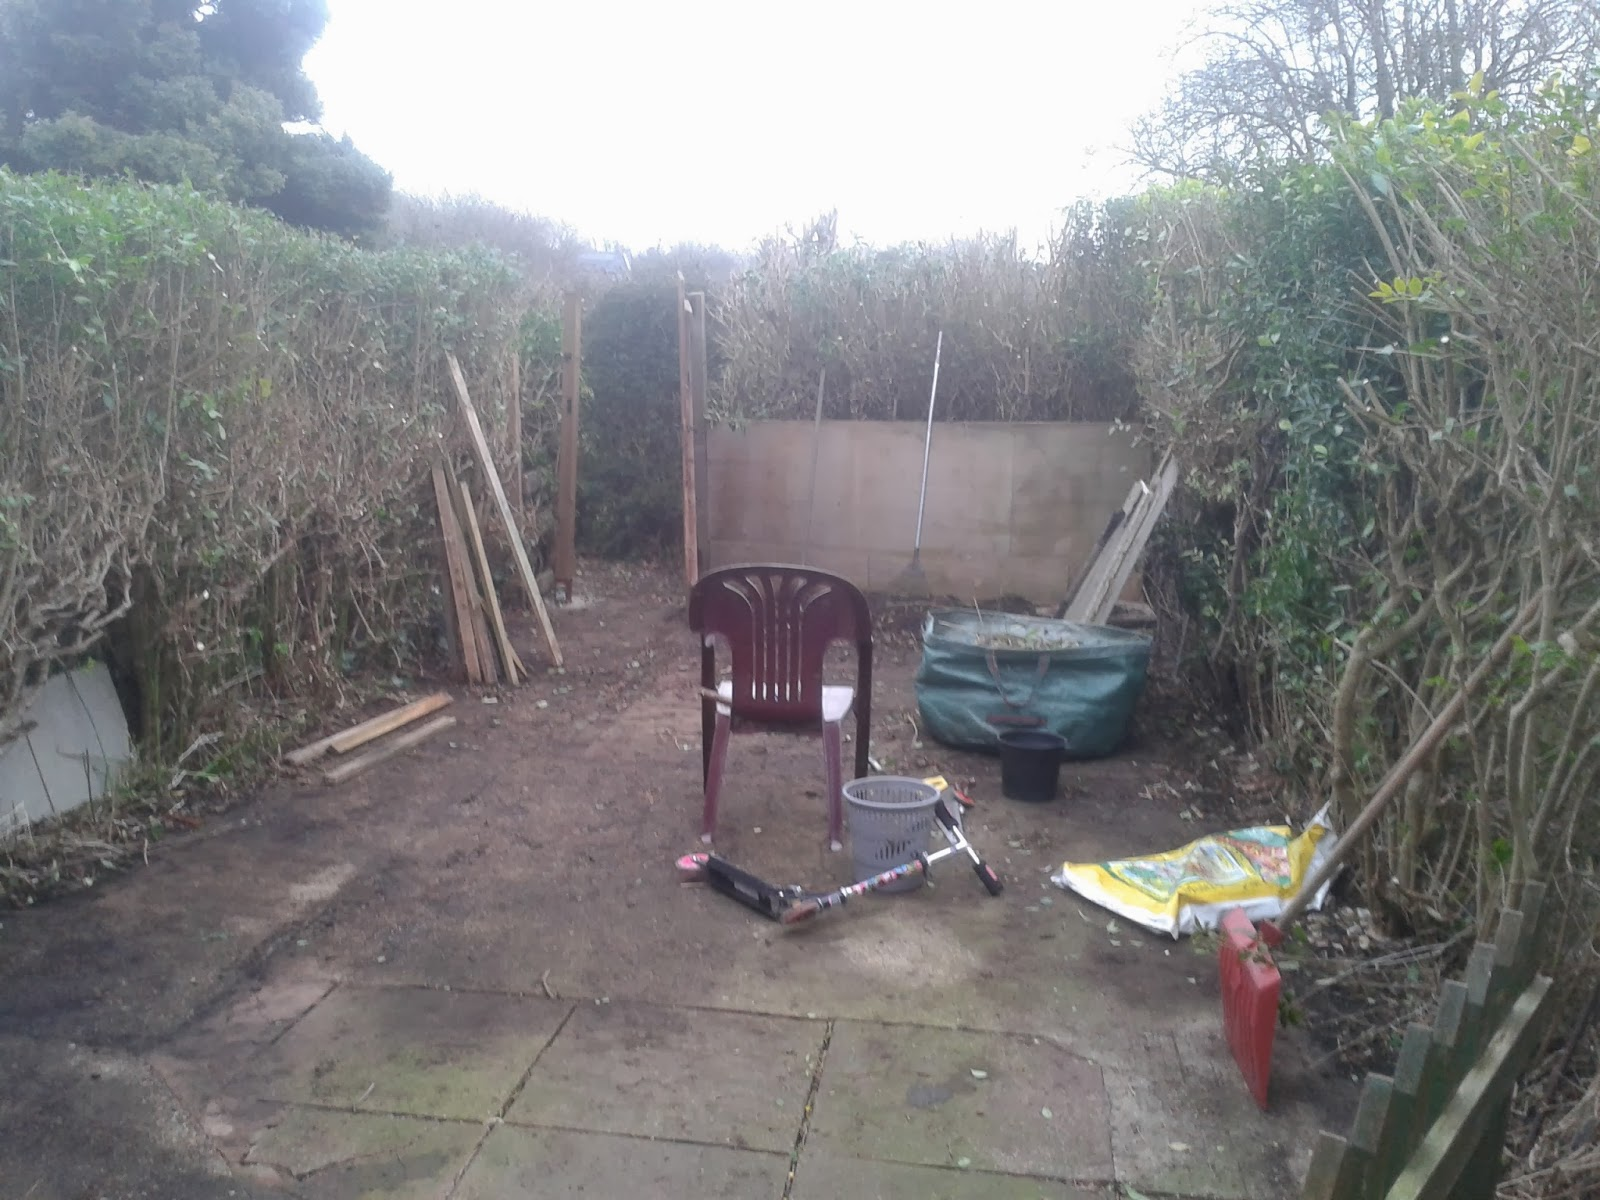 a tidy garden with an abandoned chair in the middle of it.